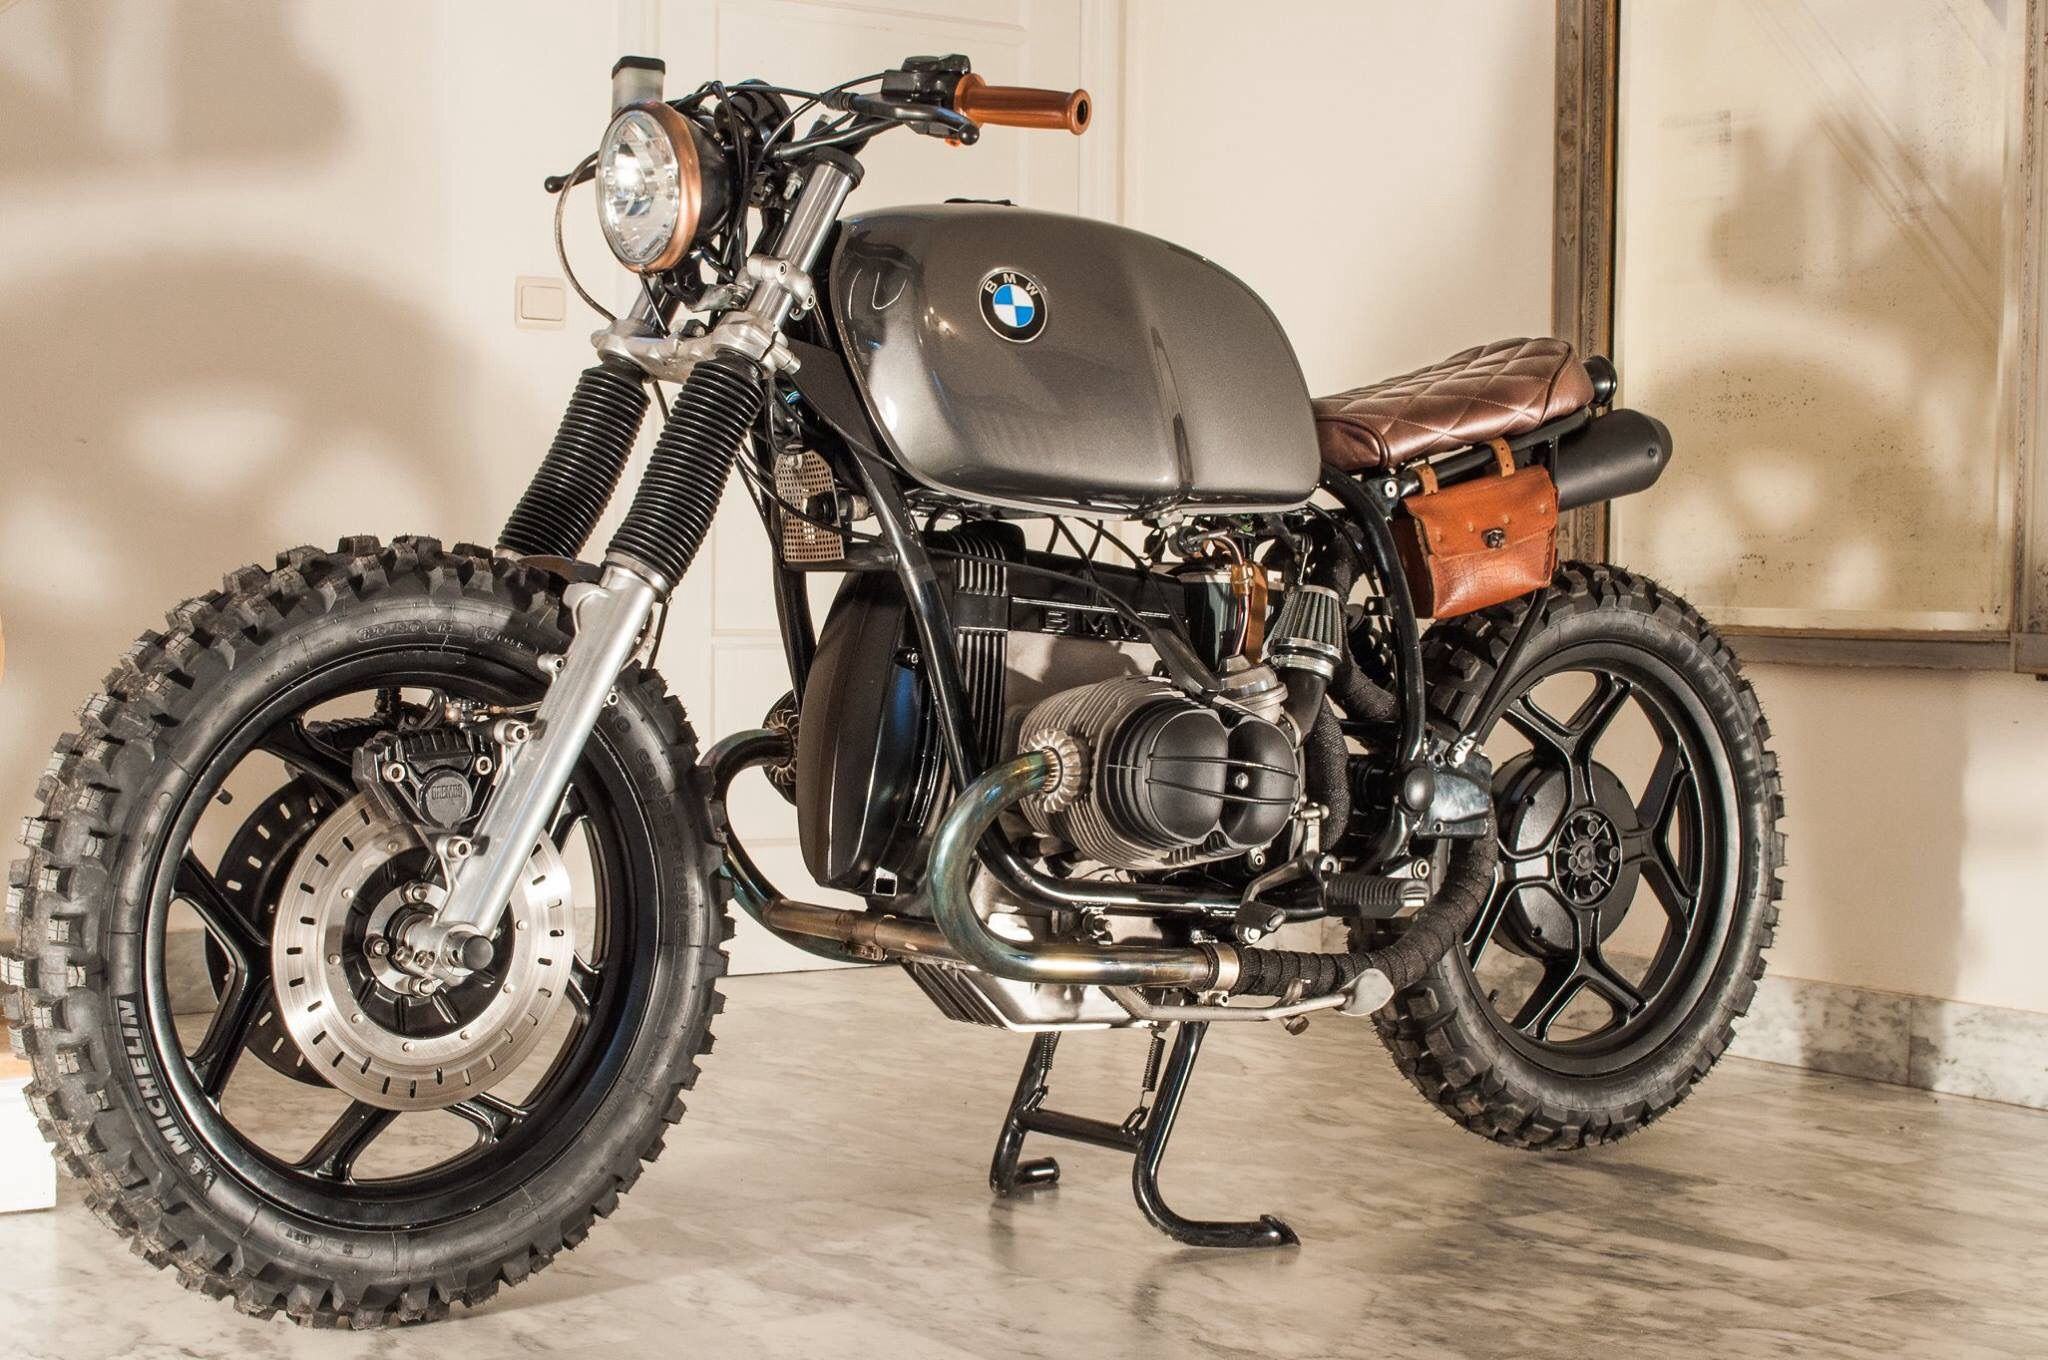 VMD02 BMW SCRAMBLER By Vintage Moto Design Yet Another Story About A R80 That Is Pursuing The Dream To Become Scrambler